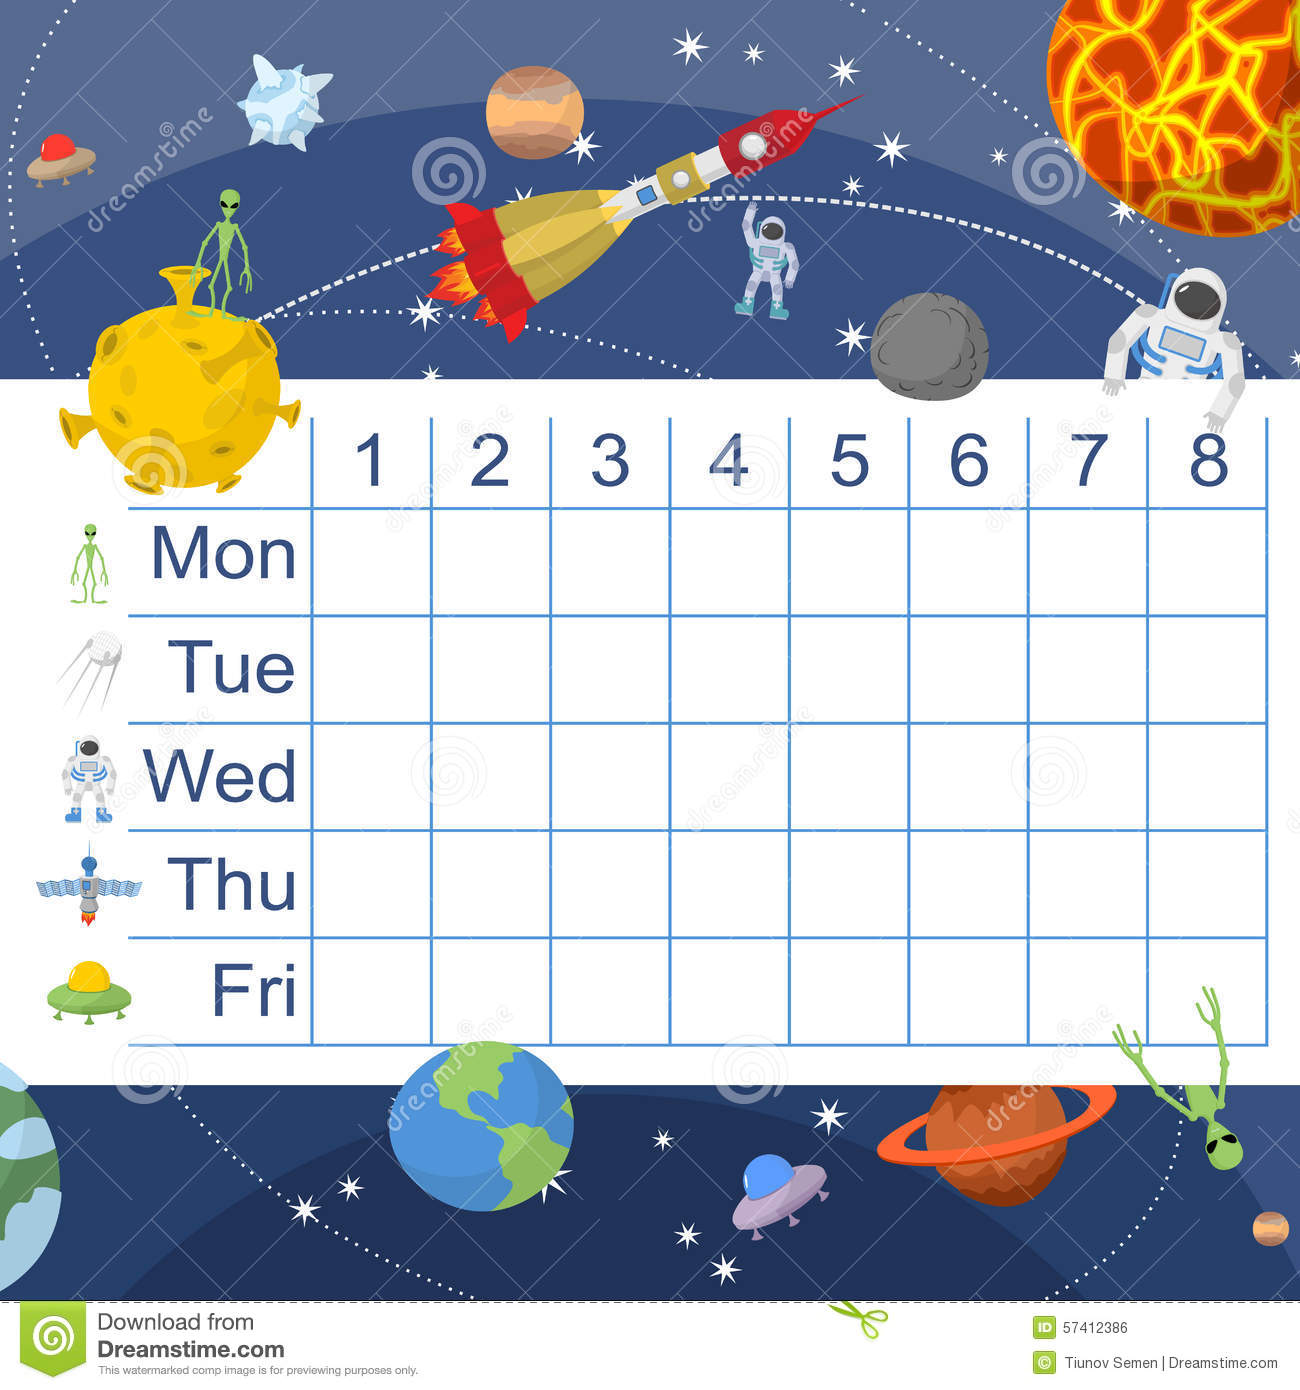 Schedule For Students  Table With Lessons For Children  Space De